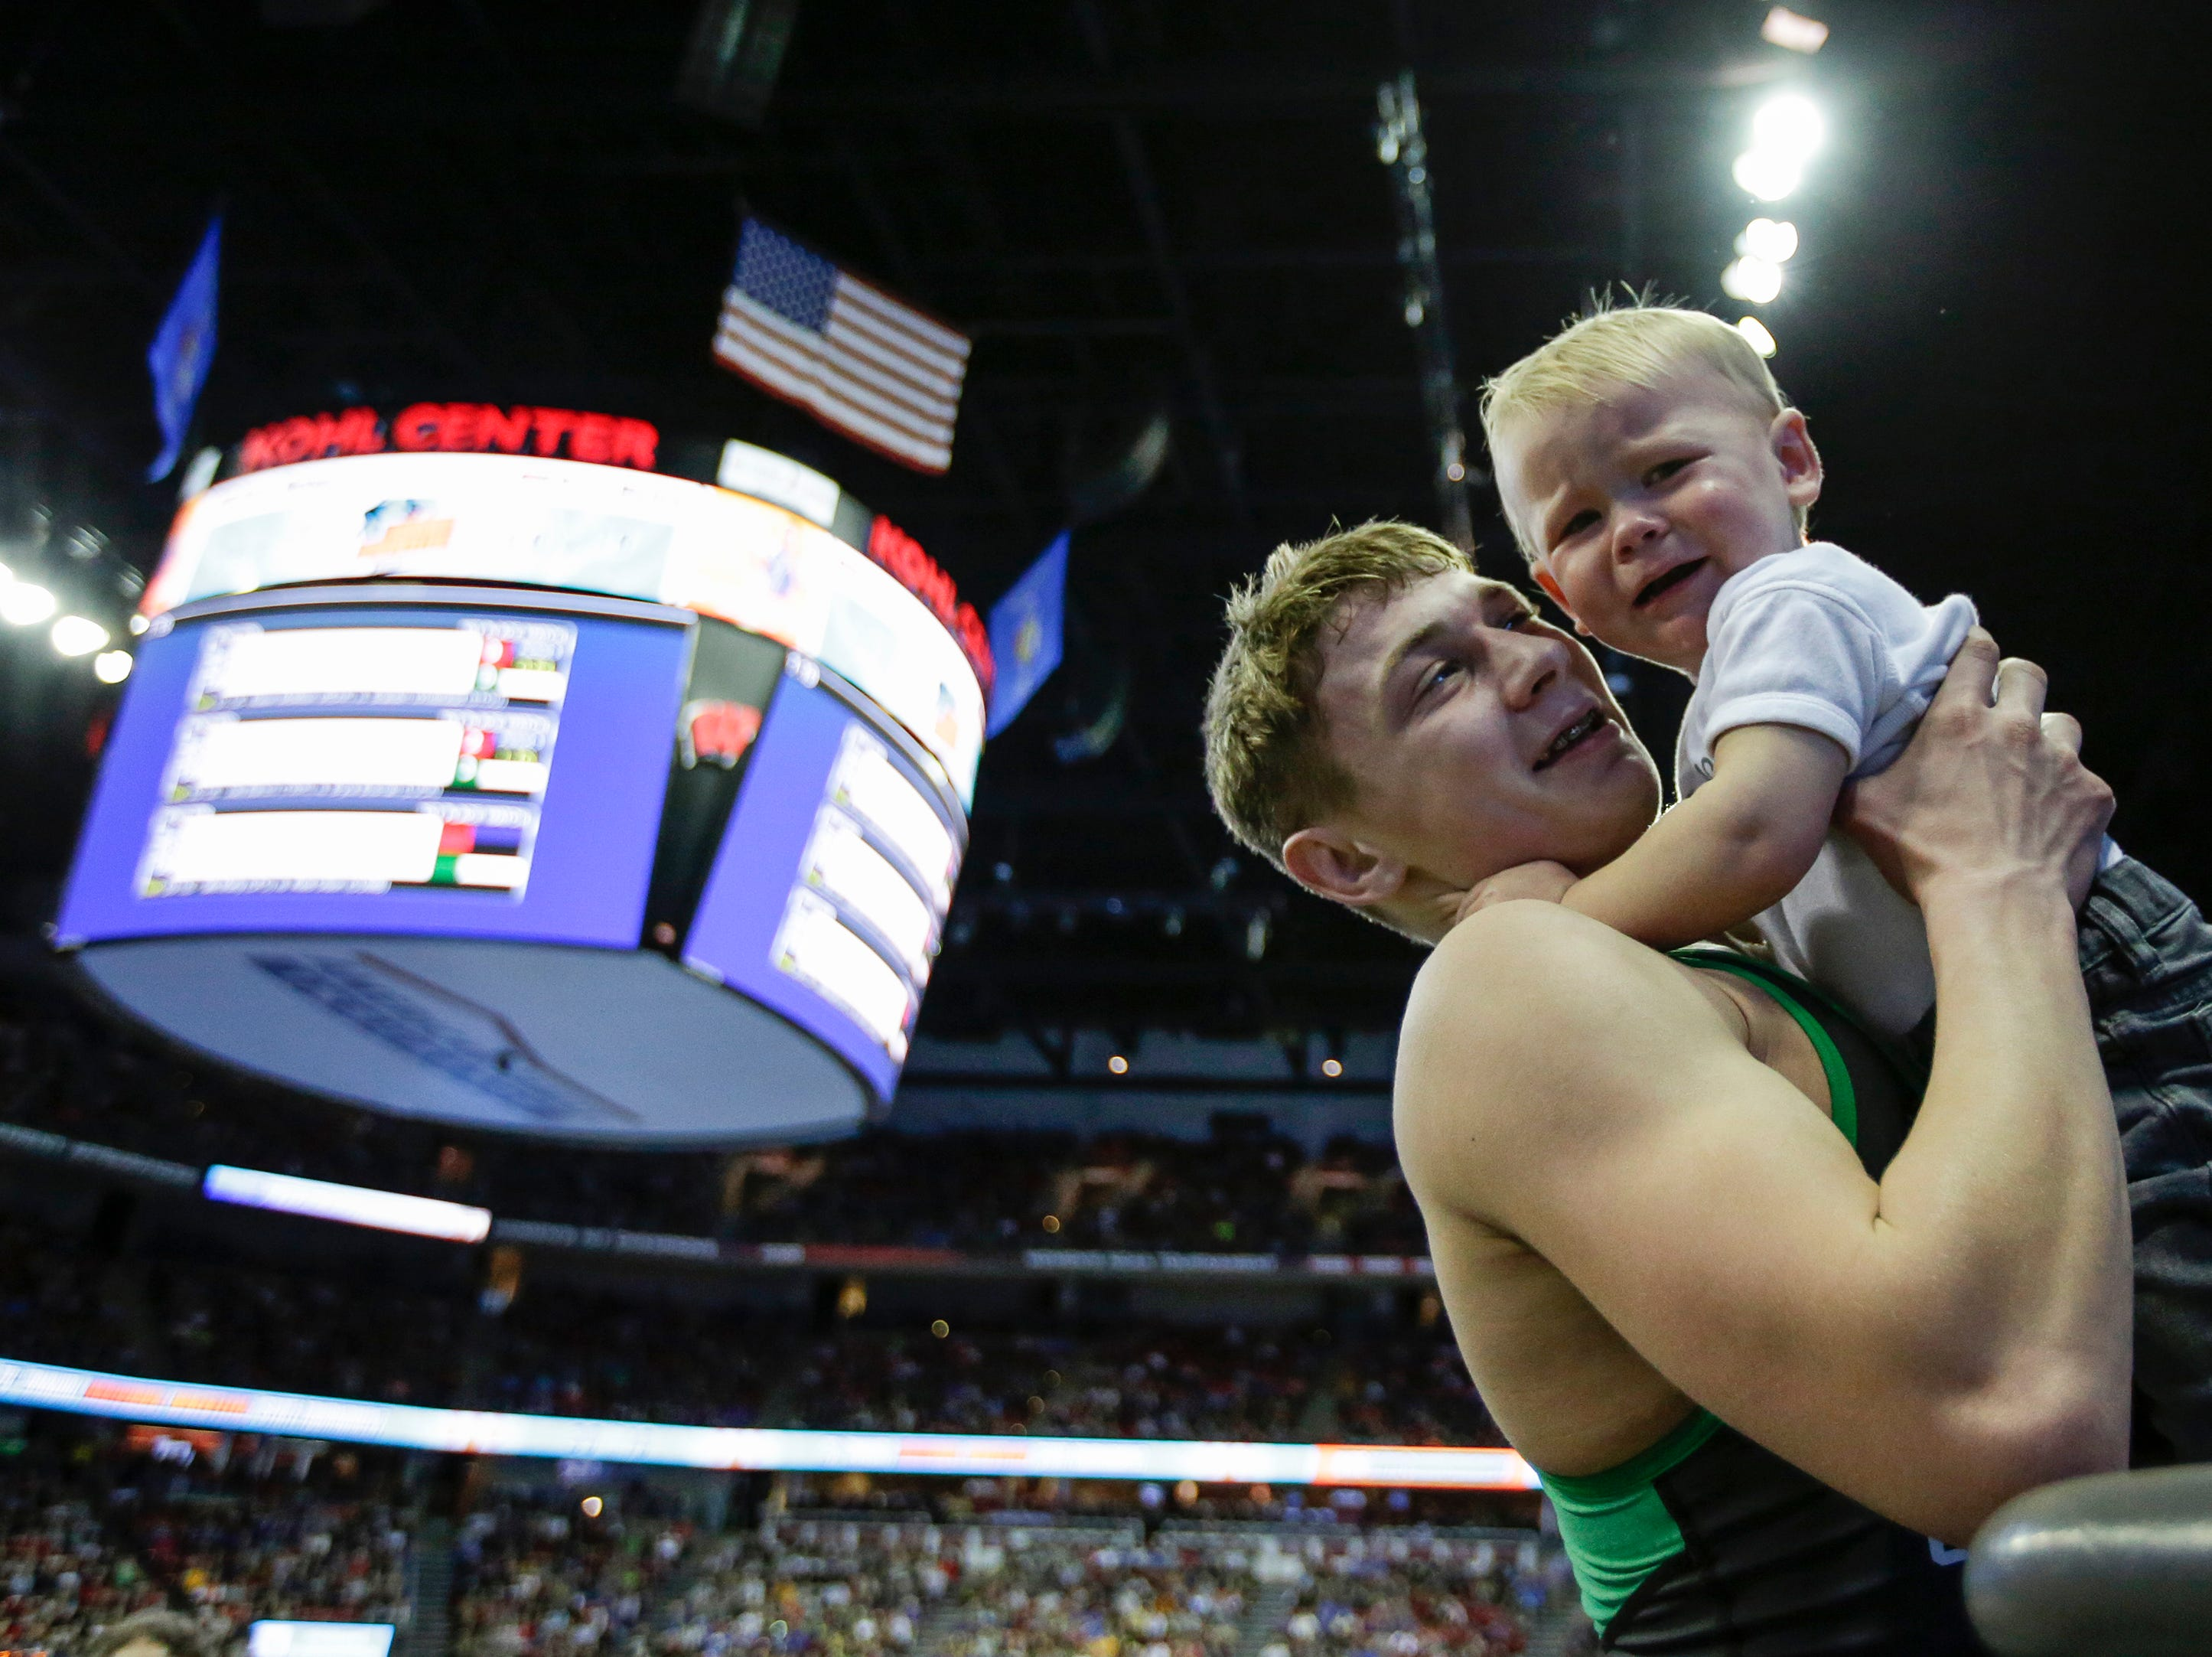 Coleman's Caleb Gross celebrates his win with his baby brother in the D3 120 pound championship during the WIAA Individual Wrestling State Tournament at the Kohl Center Saturday, Feb. 24, 2018, in Madison, Wis. Josh Clark/USA TODAY NETWORK-Wisconsin